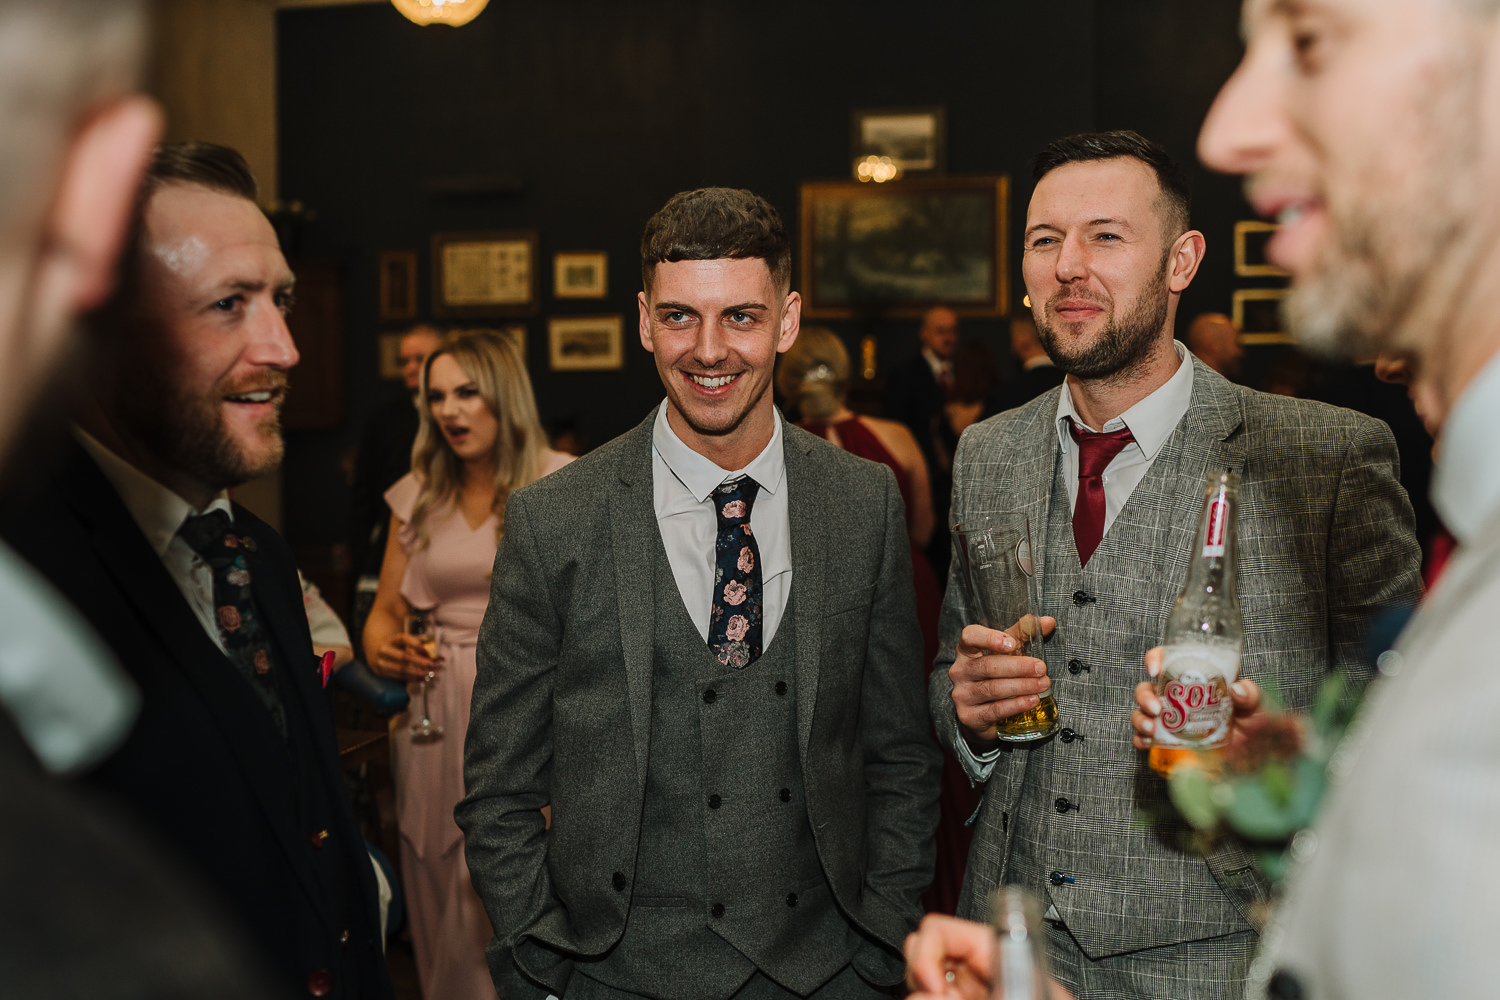 male guests laughing with the groom